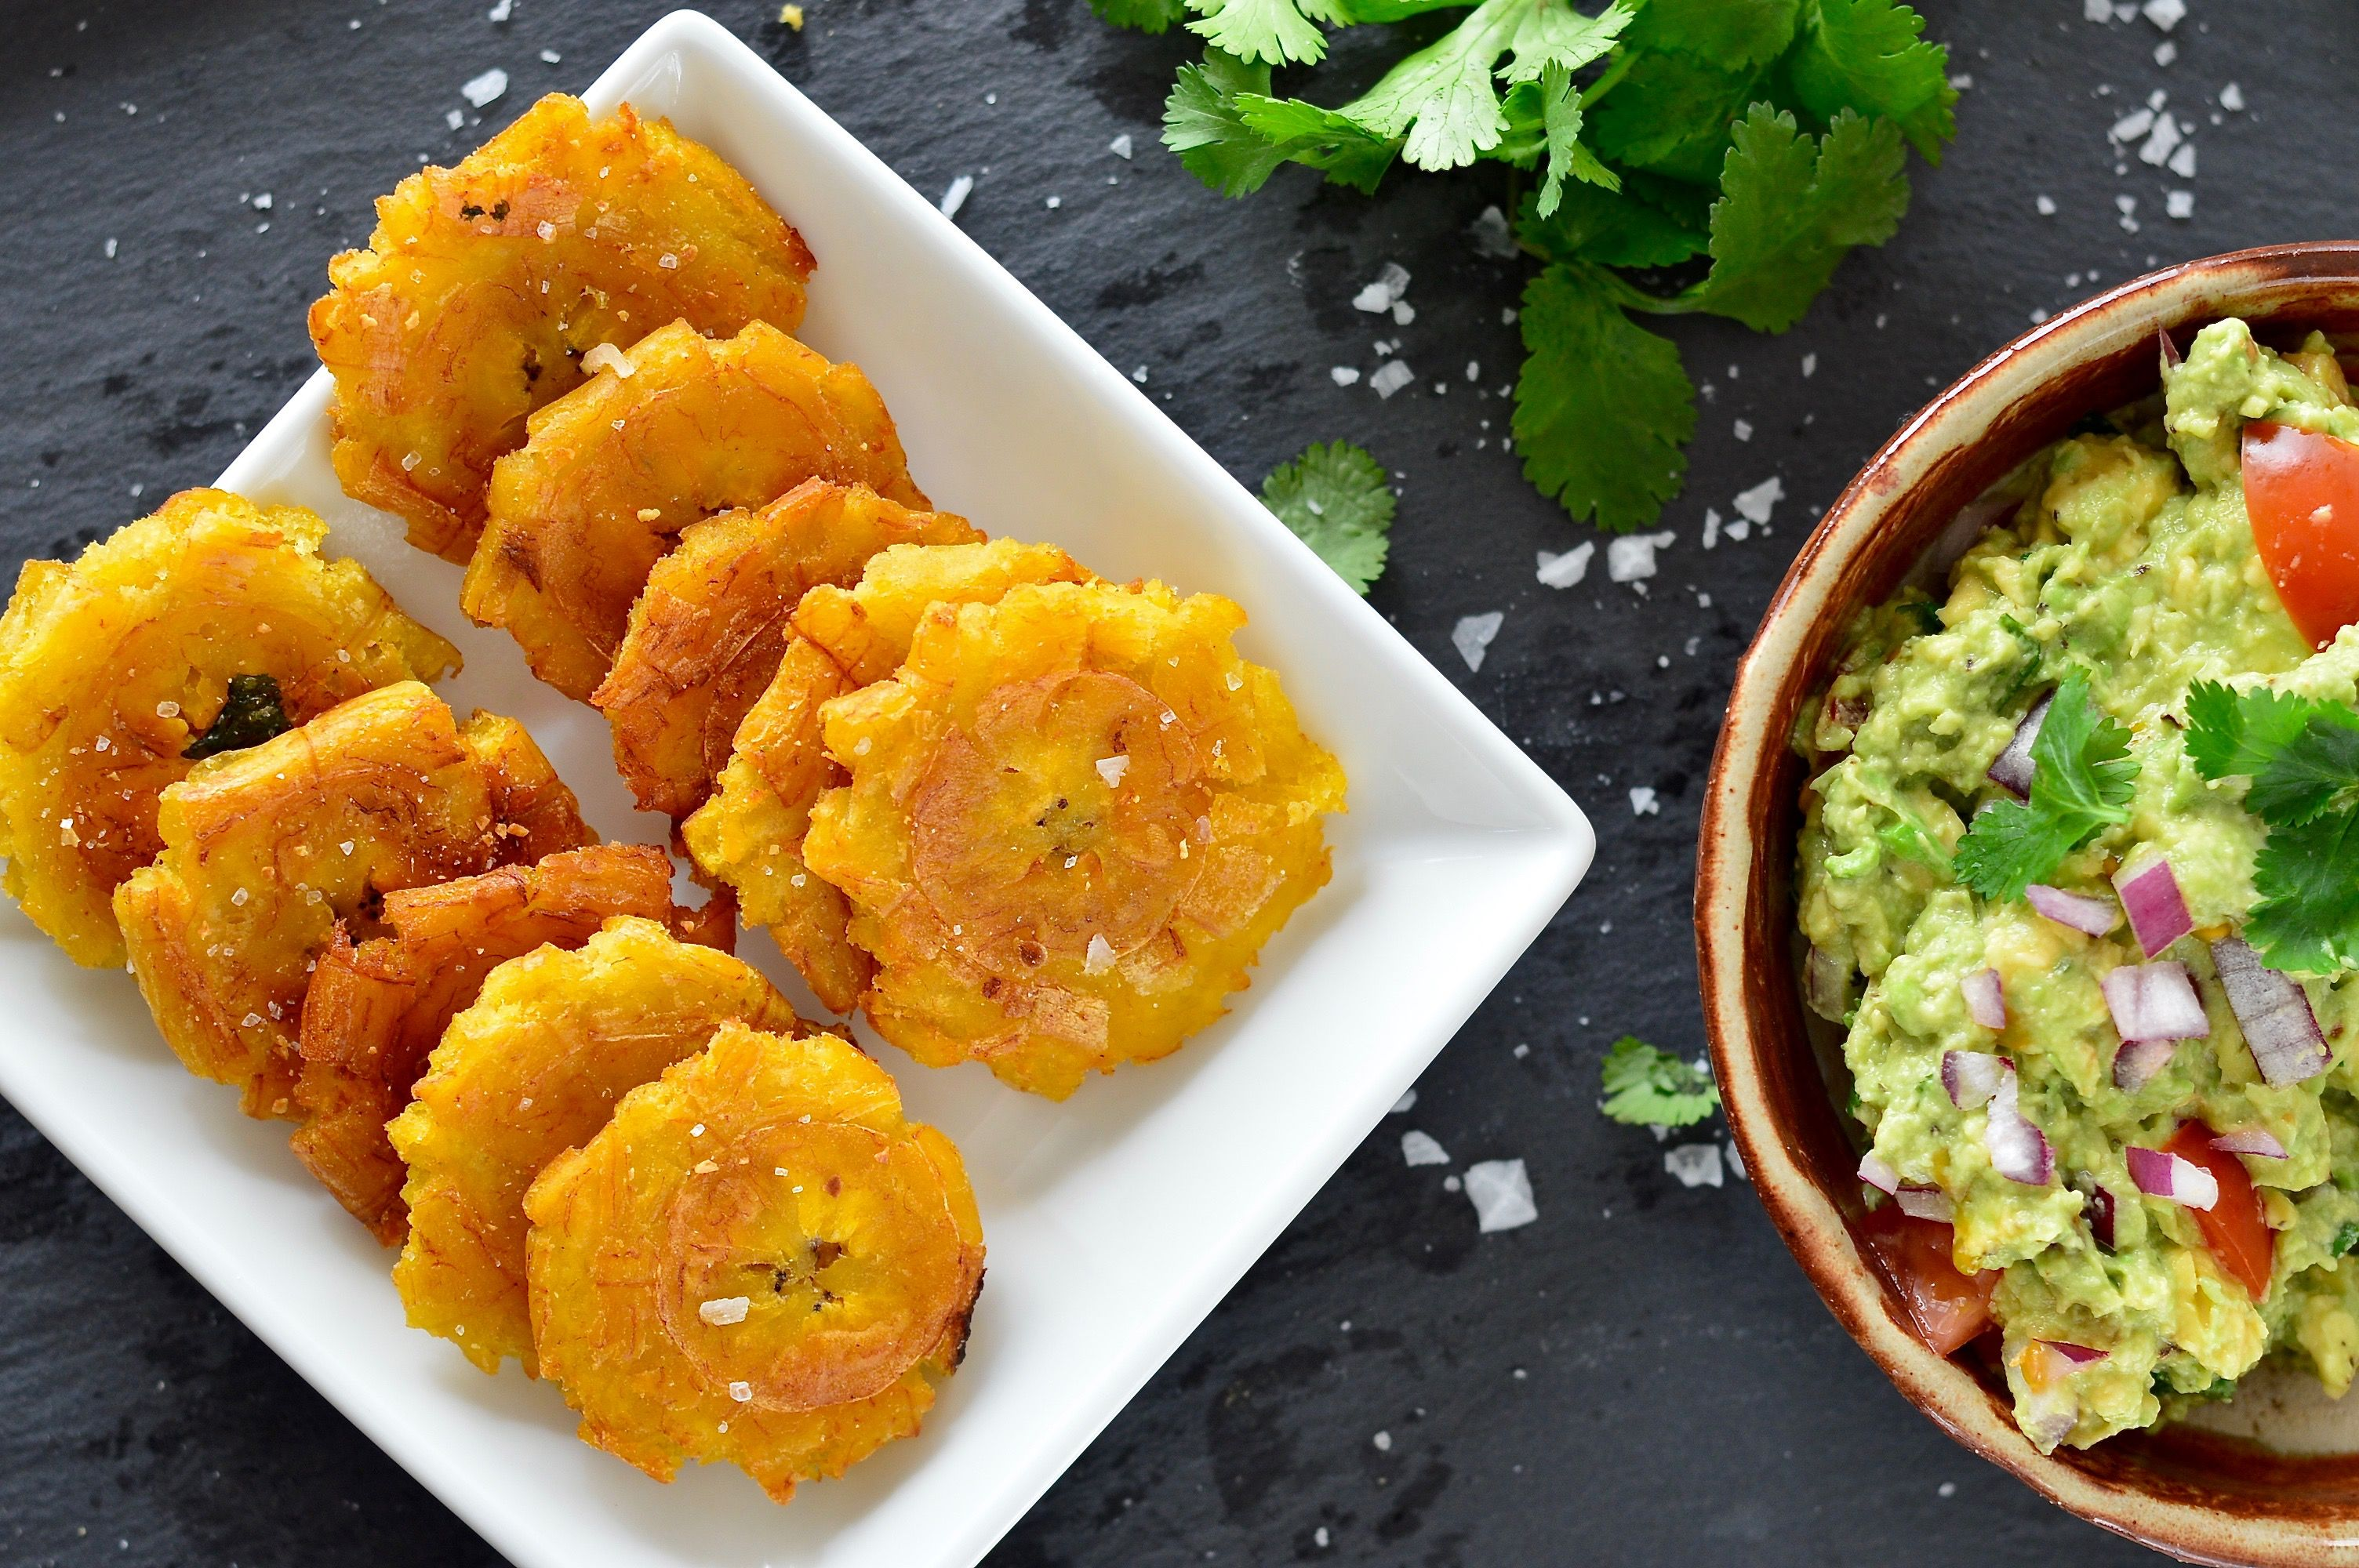 Tostones (Fried Green Plantains) are by far the best thing to happen since sliced bacon. Golden, brown, delicious, salty & crunchy...what more can you want?